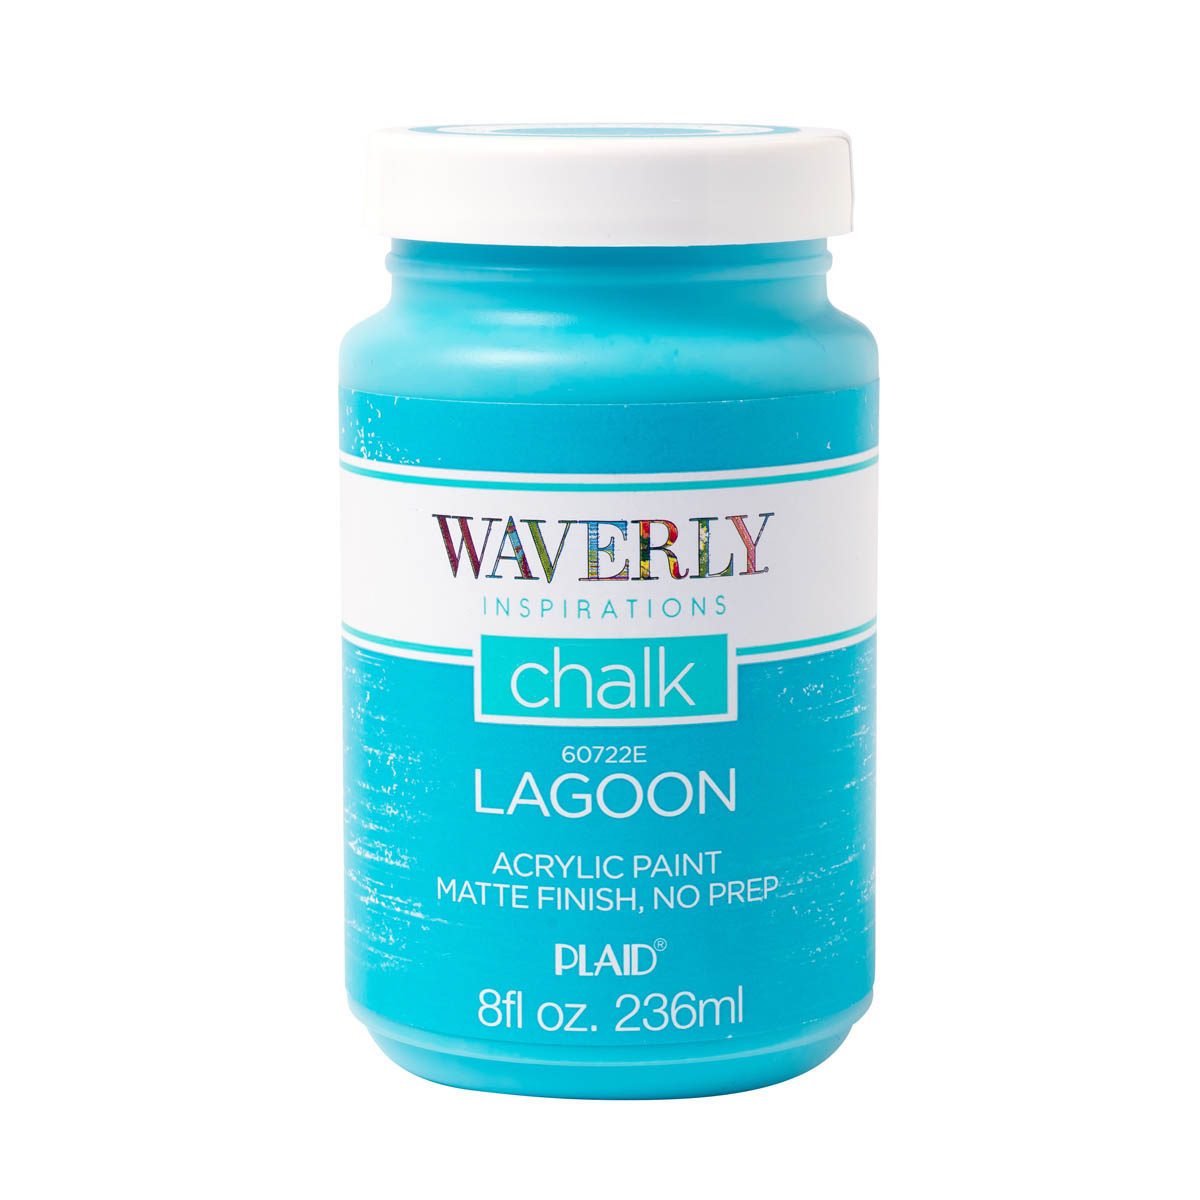 Waverly ® Inspirations Chalk Acrylic Paint - Lagoon, 8 oz.